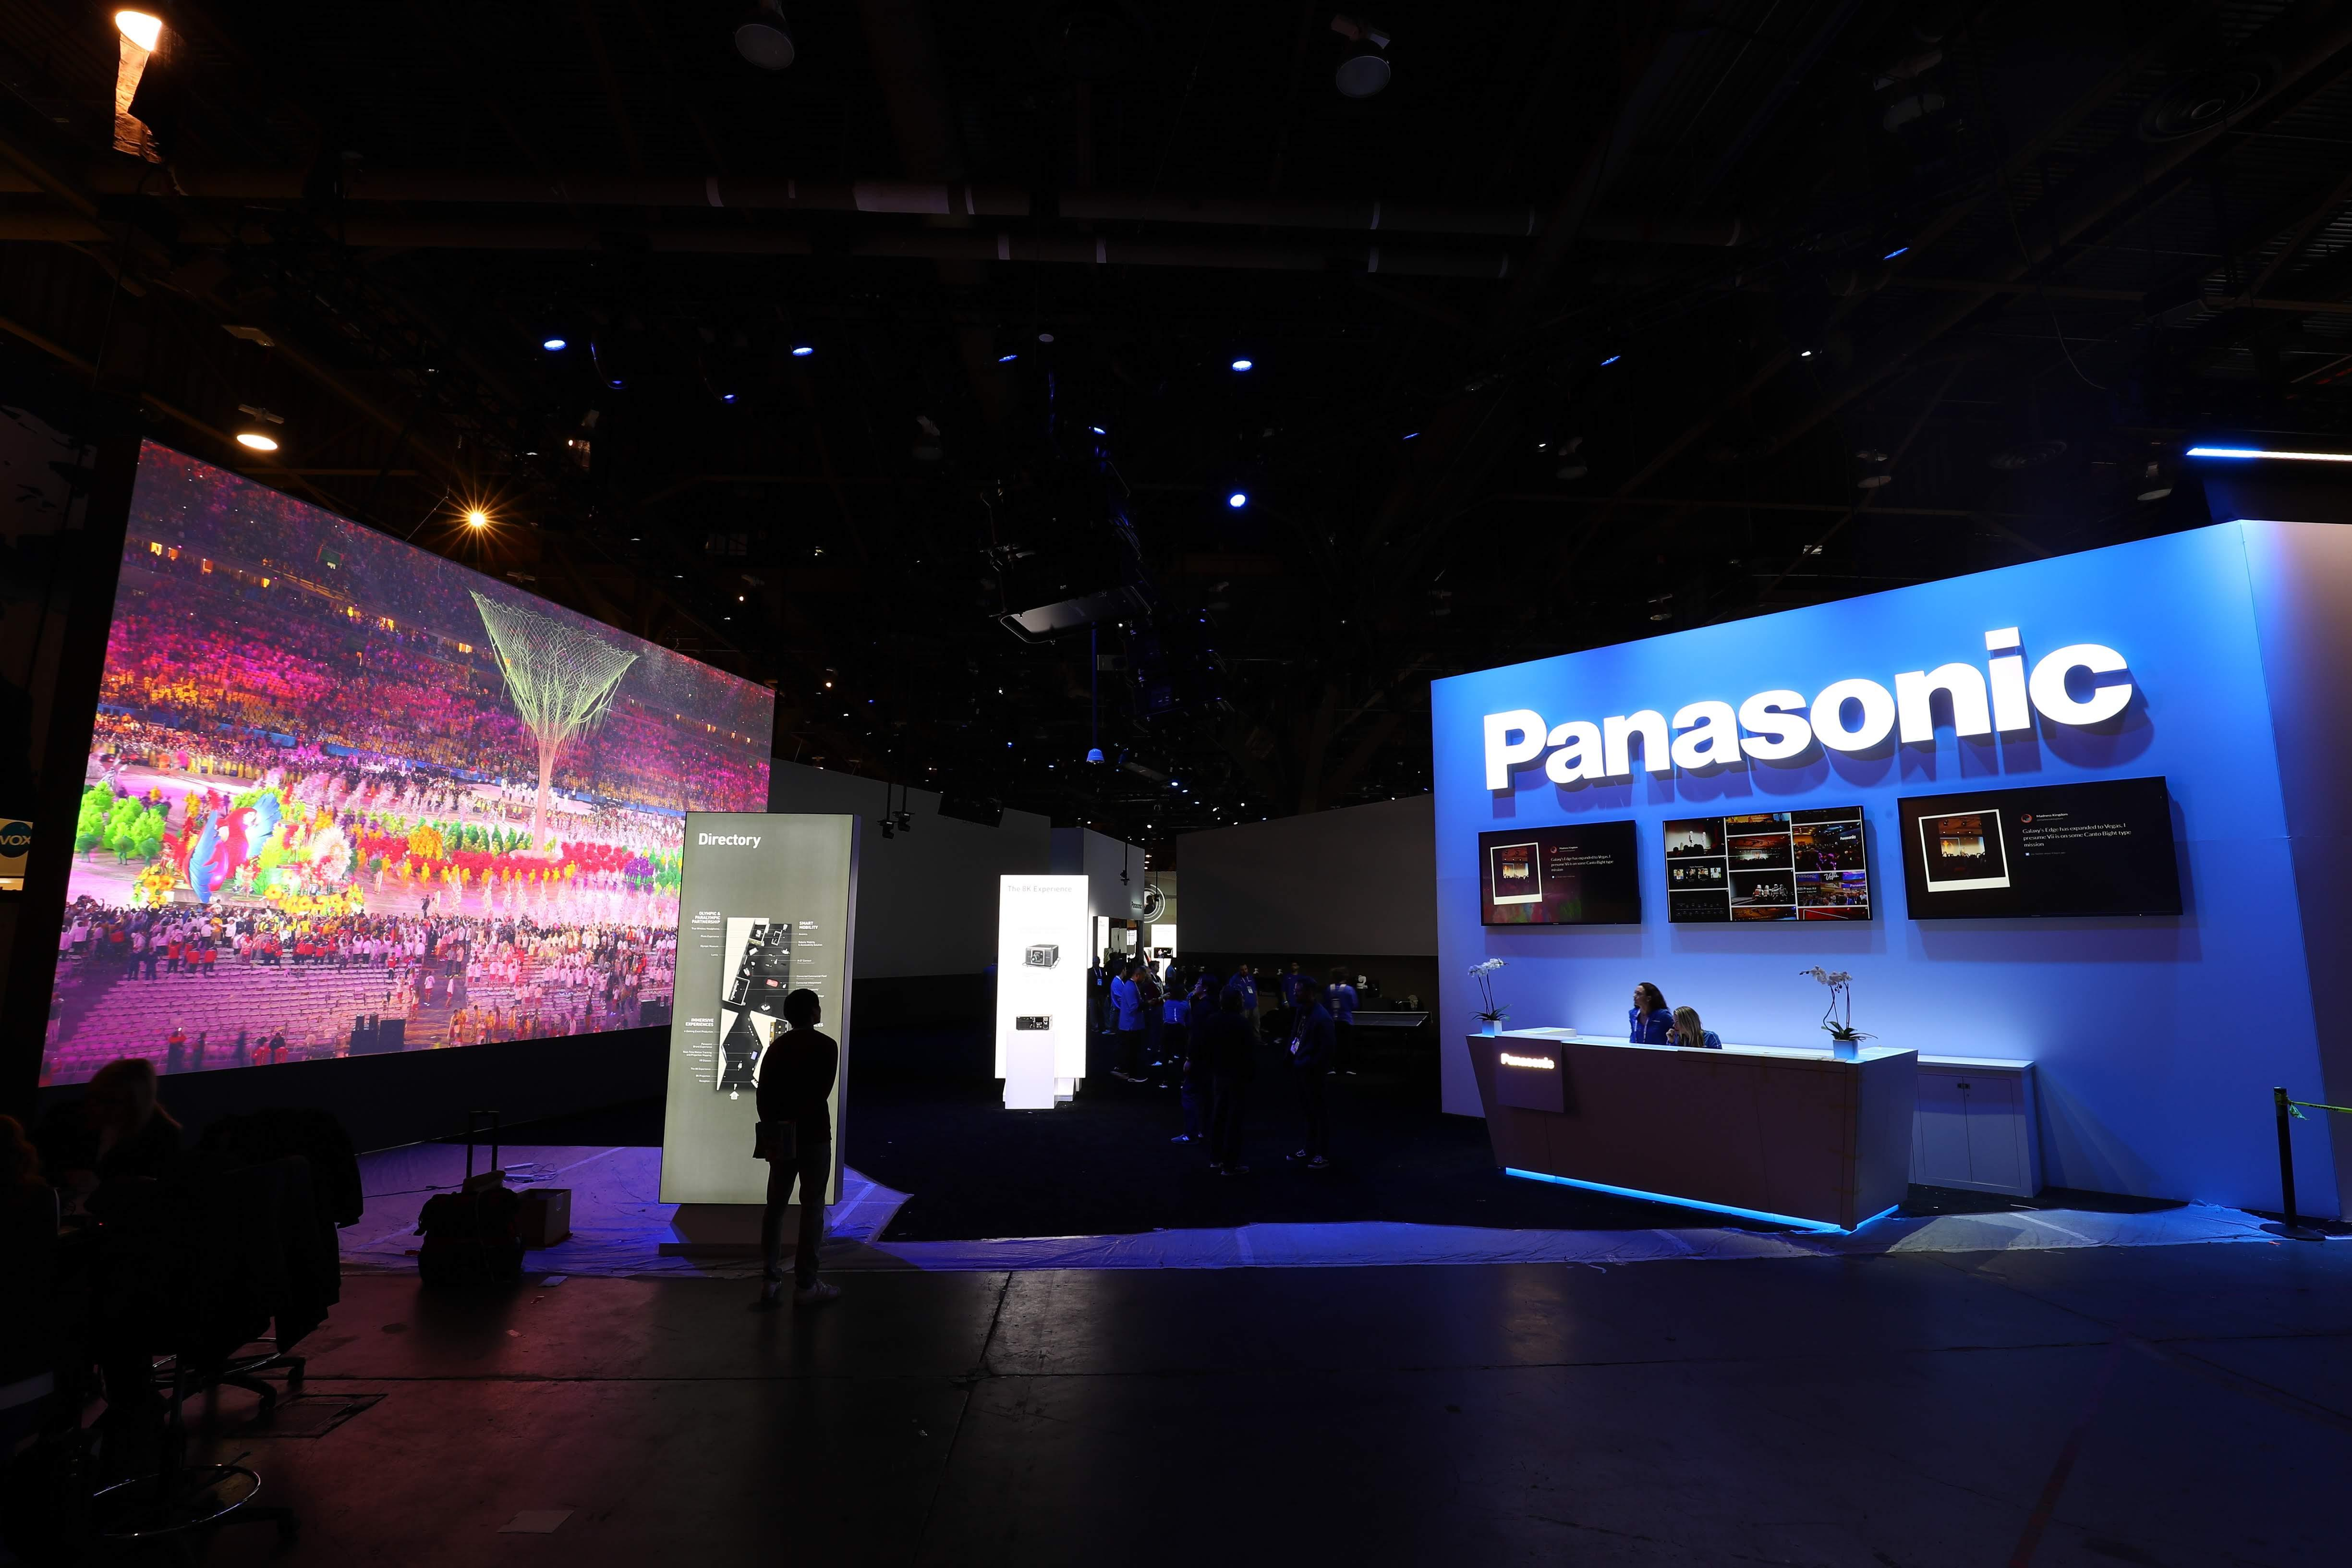 Photo: Panasonic booth at CES 2020